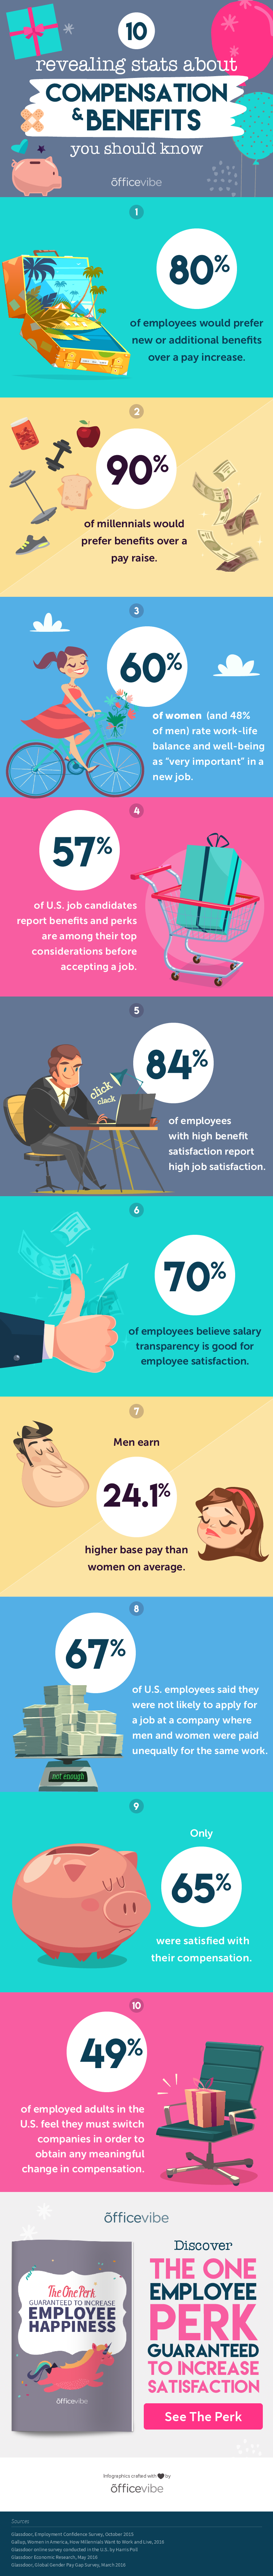 10 Revealing Statistics About Compensation And Benefits You Should Know